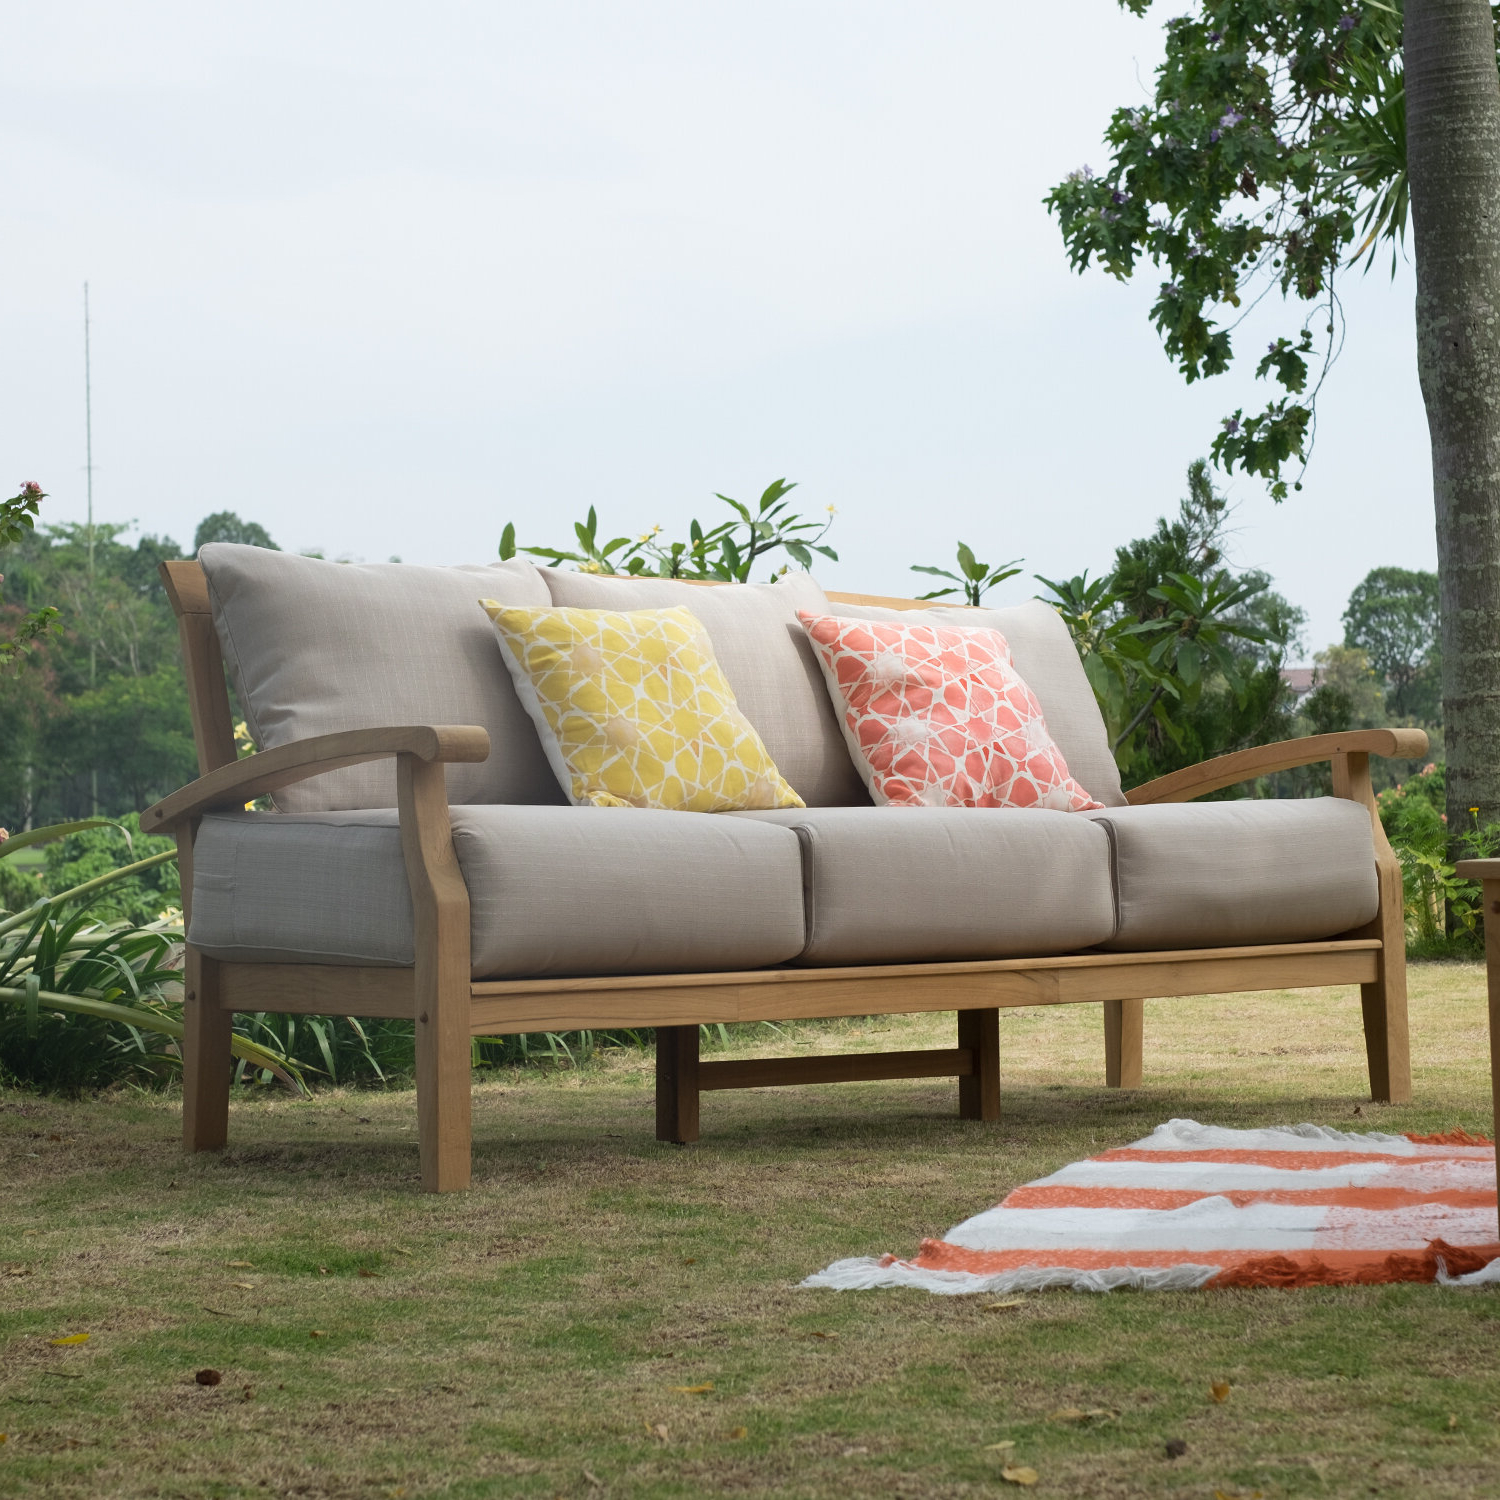 Summerton Teak Patio Sofa With Cushions With Regard To Preferred Summerton Teak Loveseats With Cushions (View 18 of 20)